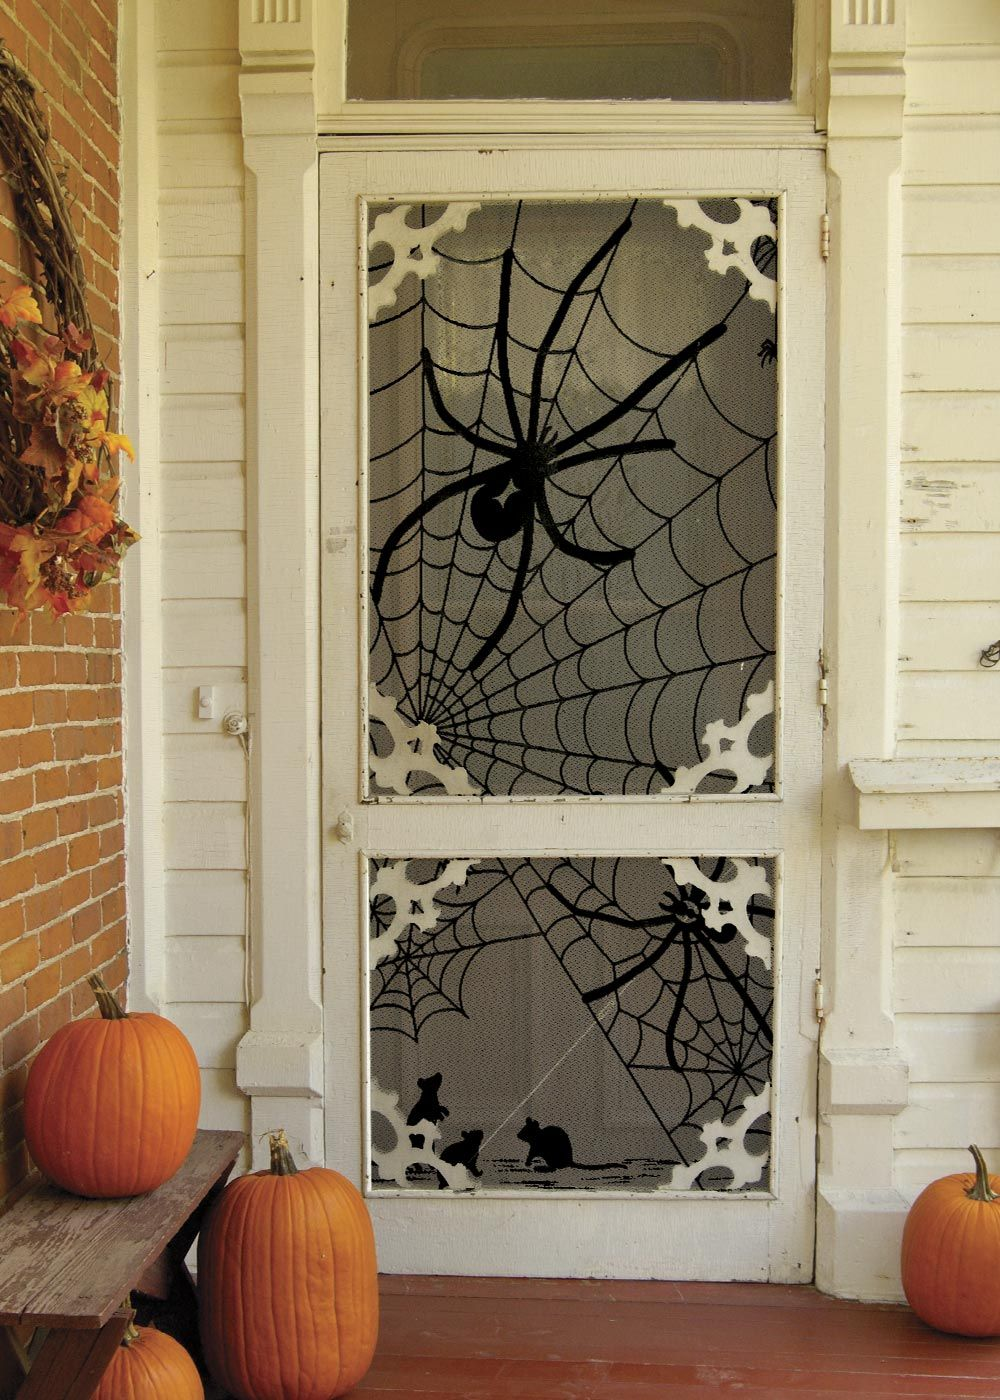 Halloween Decorations Spiders Web To Spook Up Everyone - Cute scary halloween decoration ideas creative halloween decorations